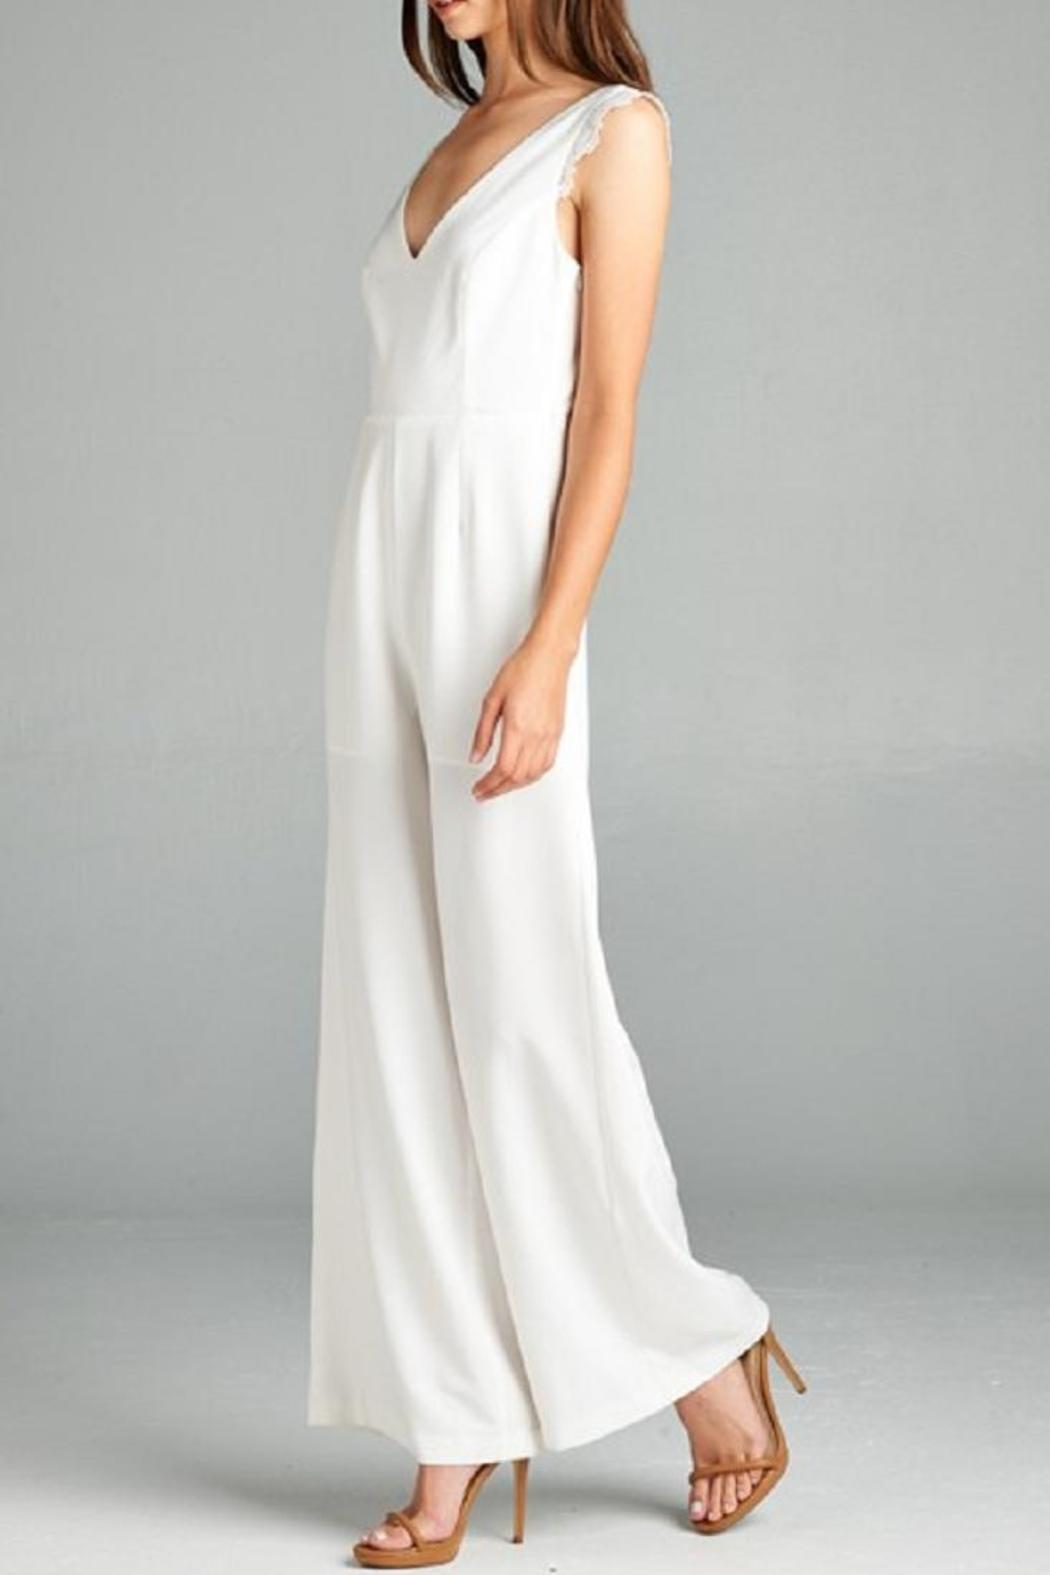 Where can i buy a white dress